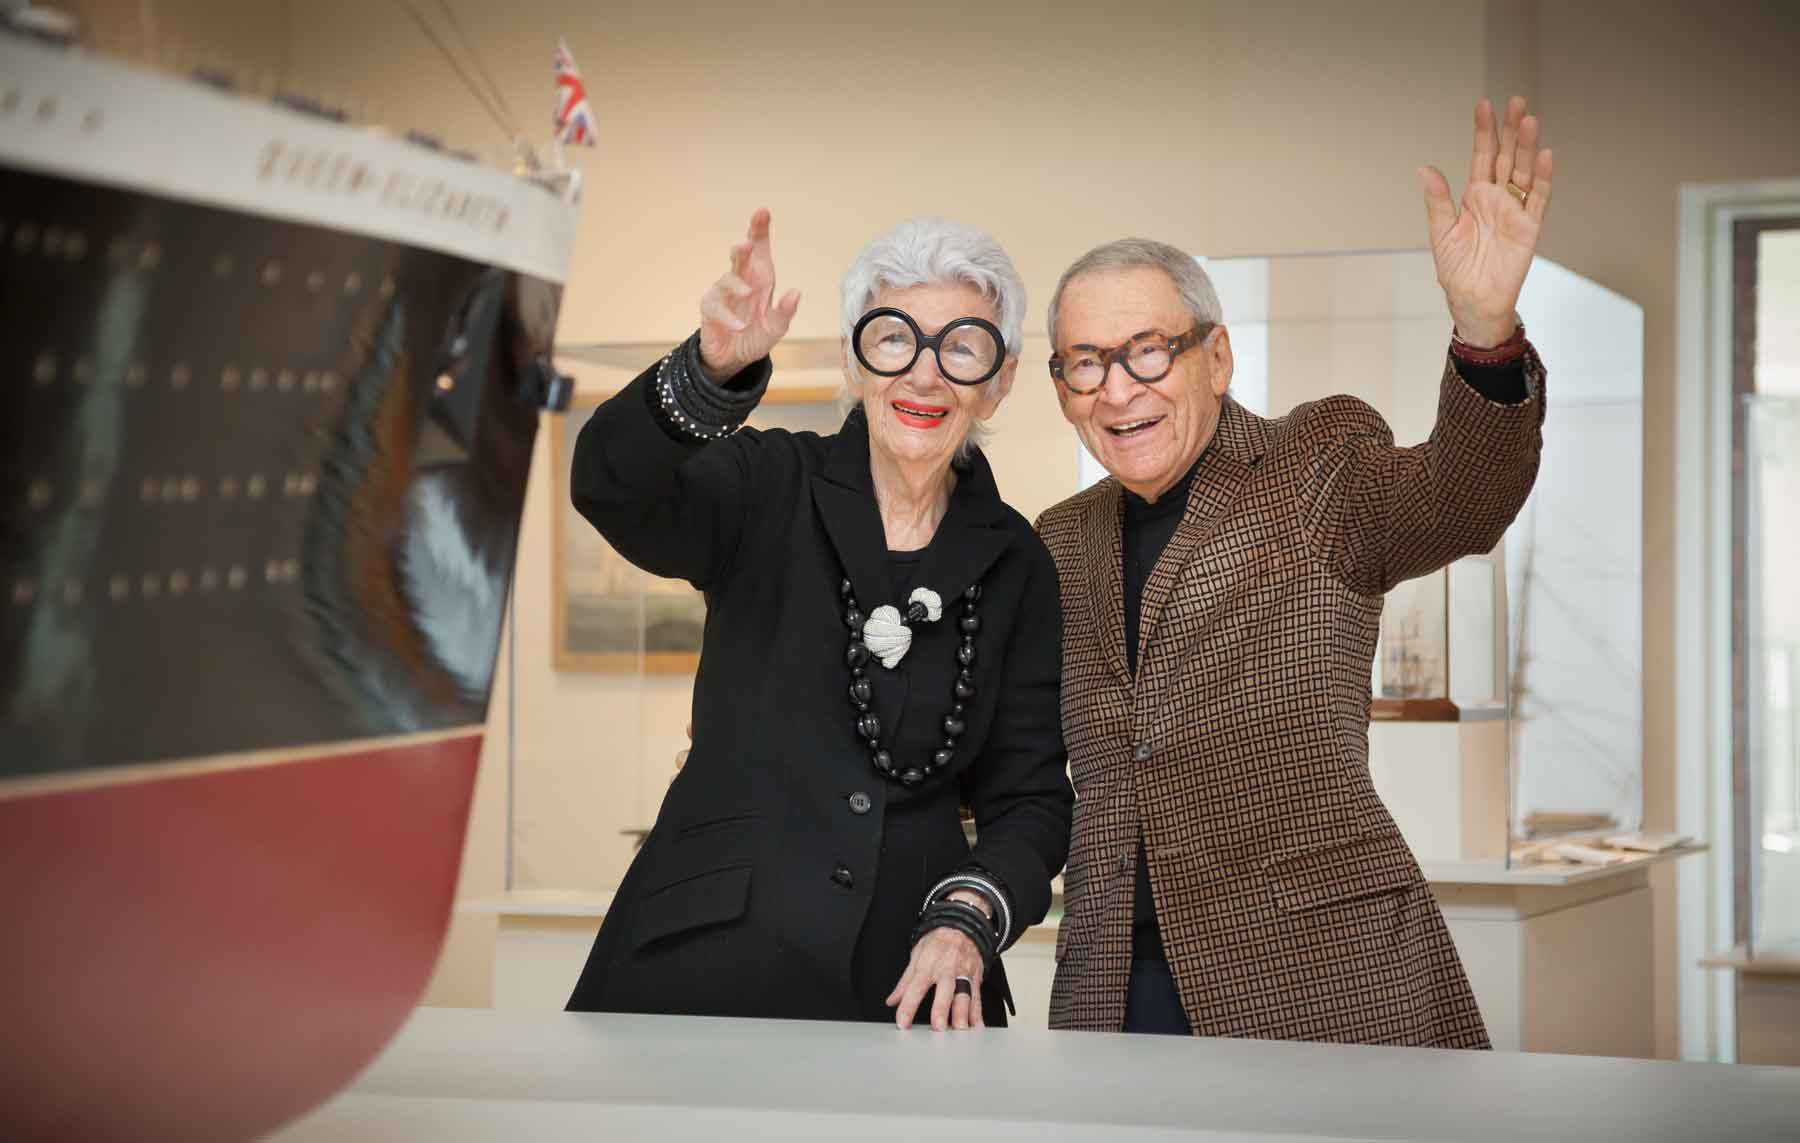 Iris and the late Carl Apfel in the galleries at PEM in 2009. Photo by Walter Silver